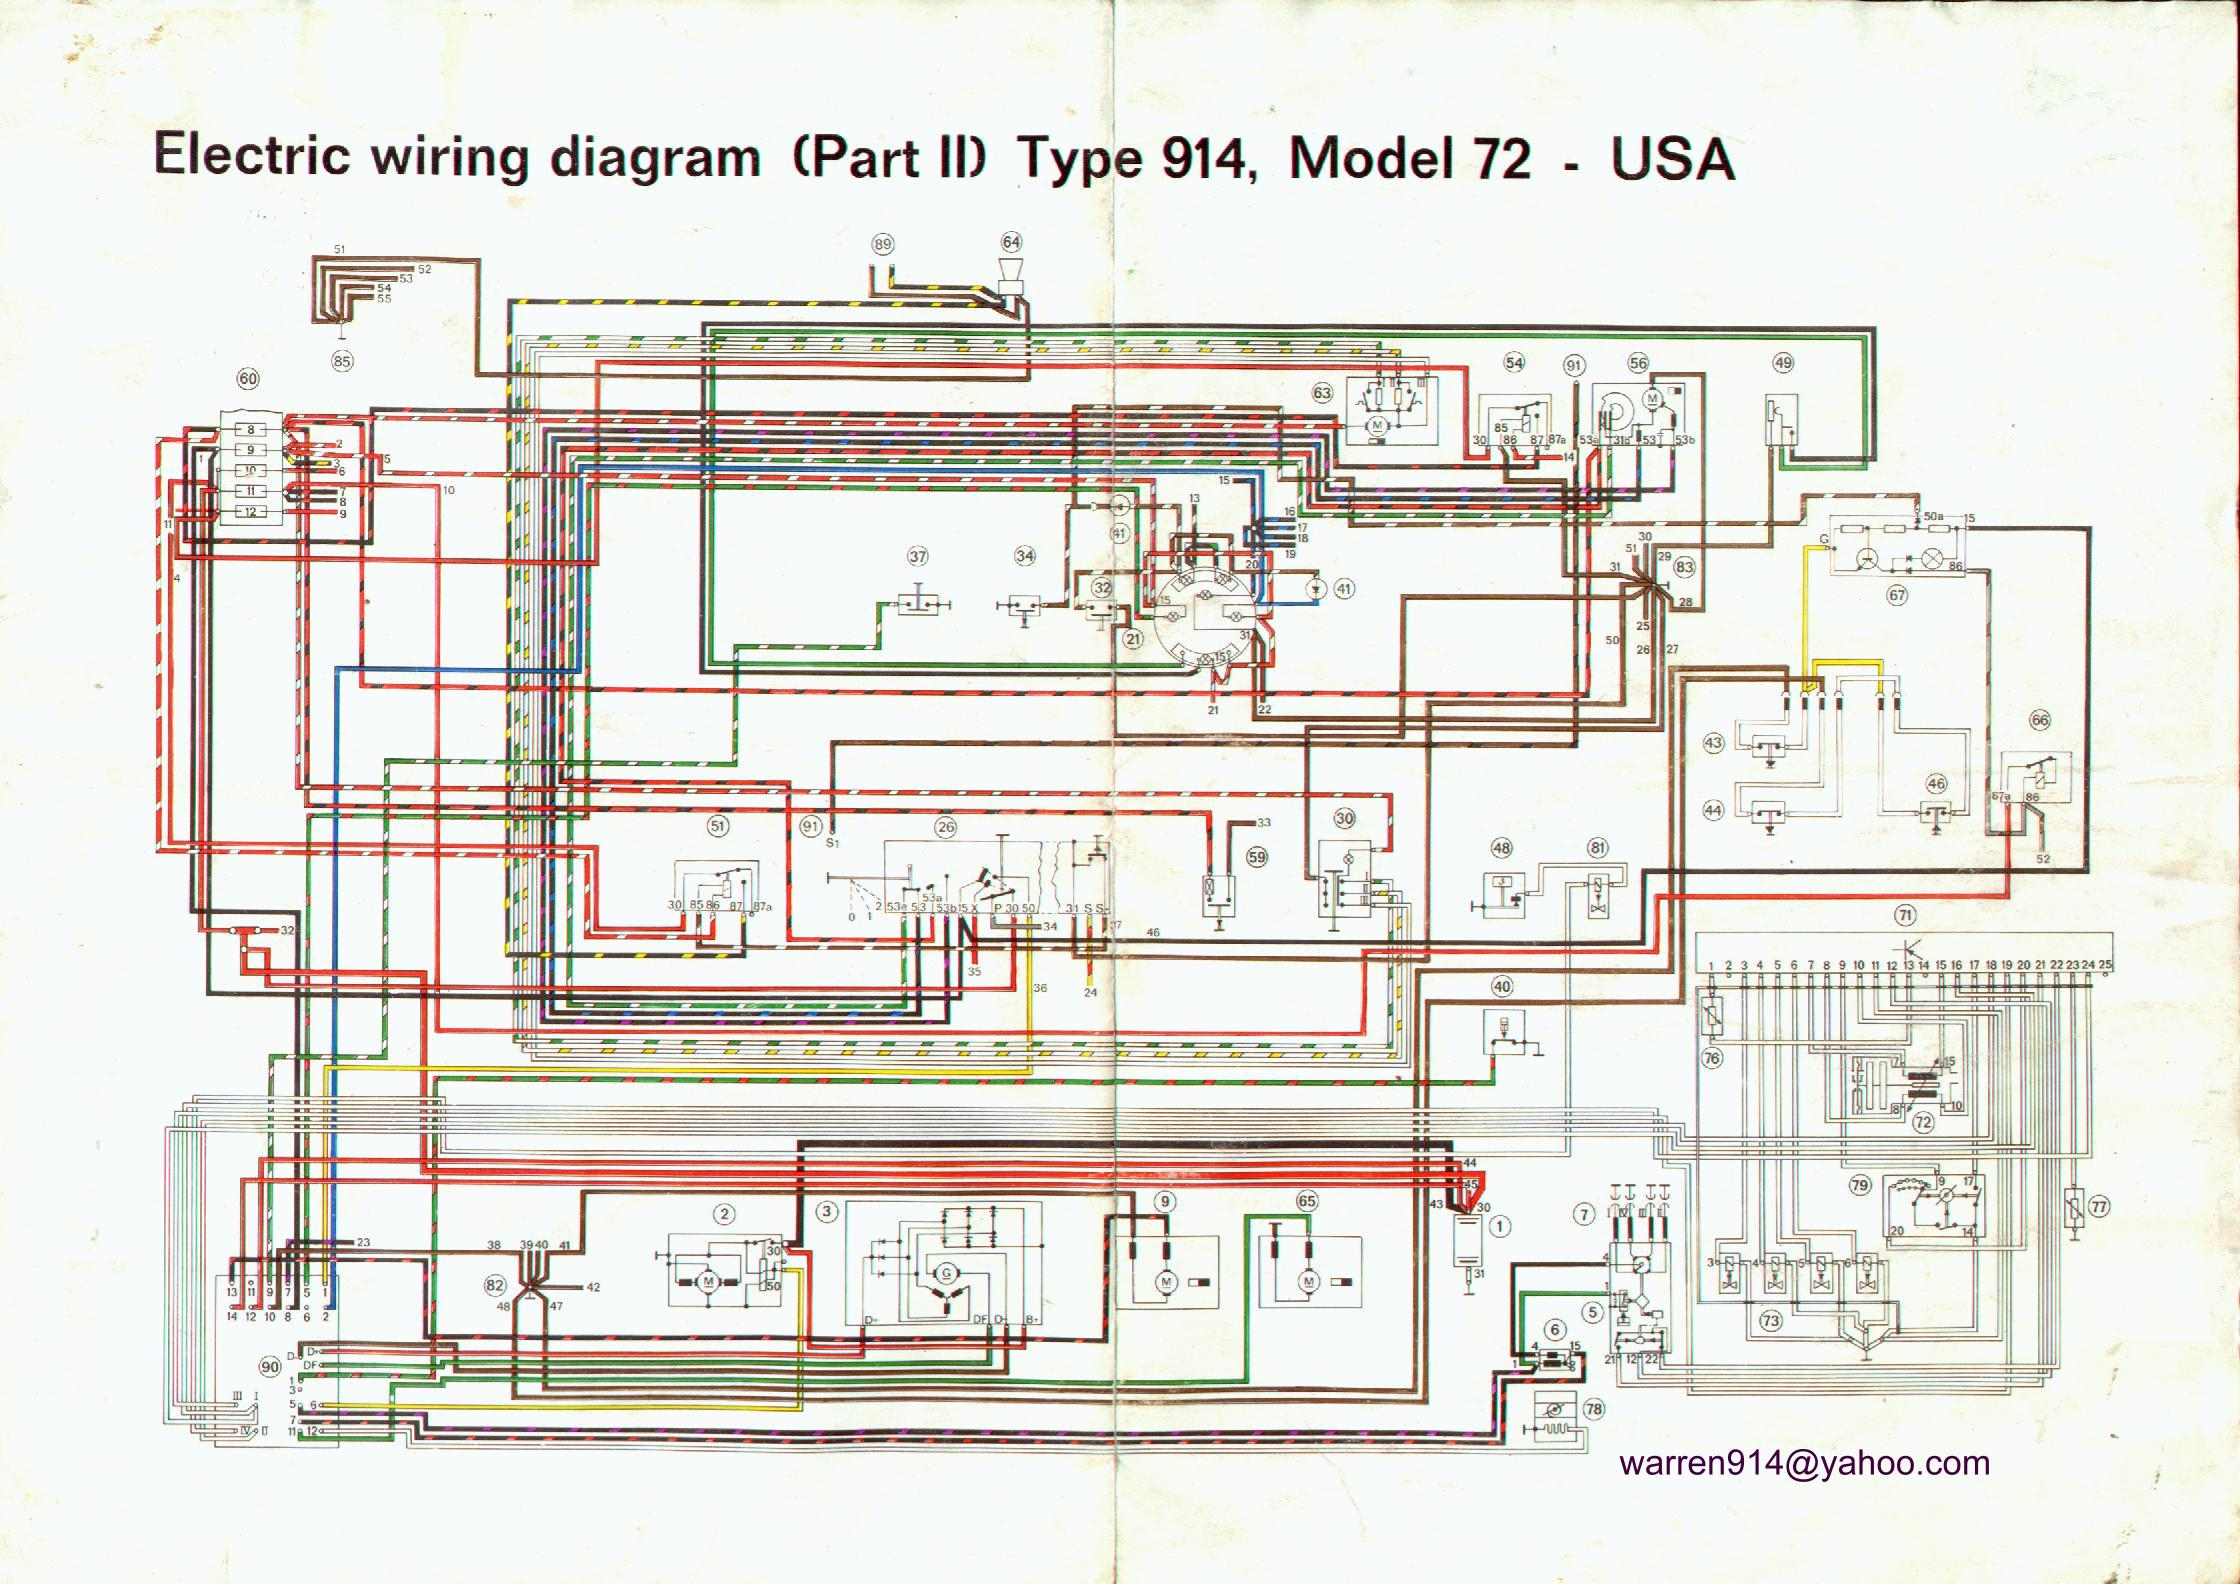 1973 porsche 914 wiring diagram 2001 saab 9 3 stereo get free image about